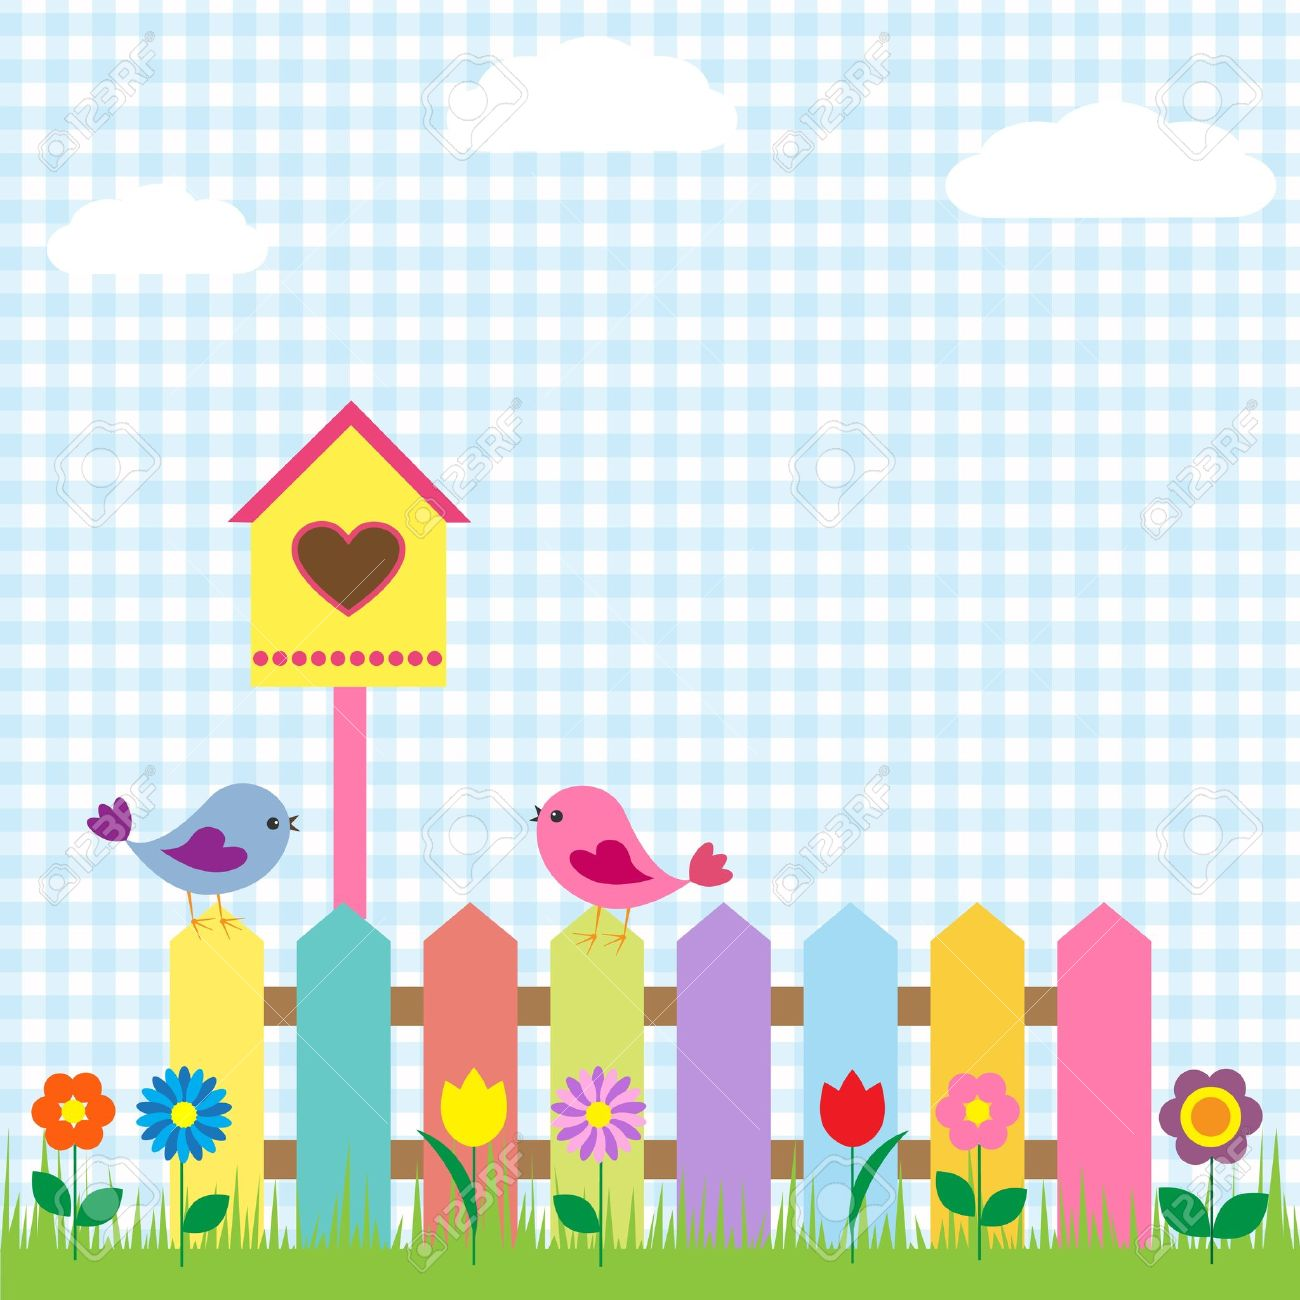 Background With Birds And Birdhouse Royalty Free Cliparts, Vectors.